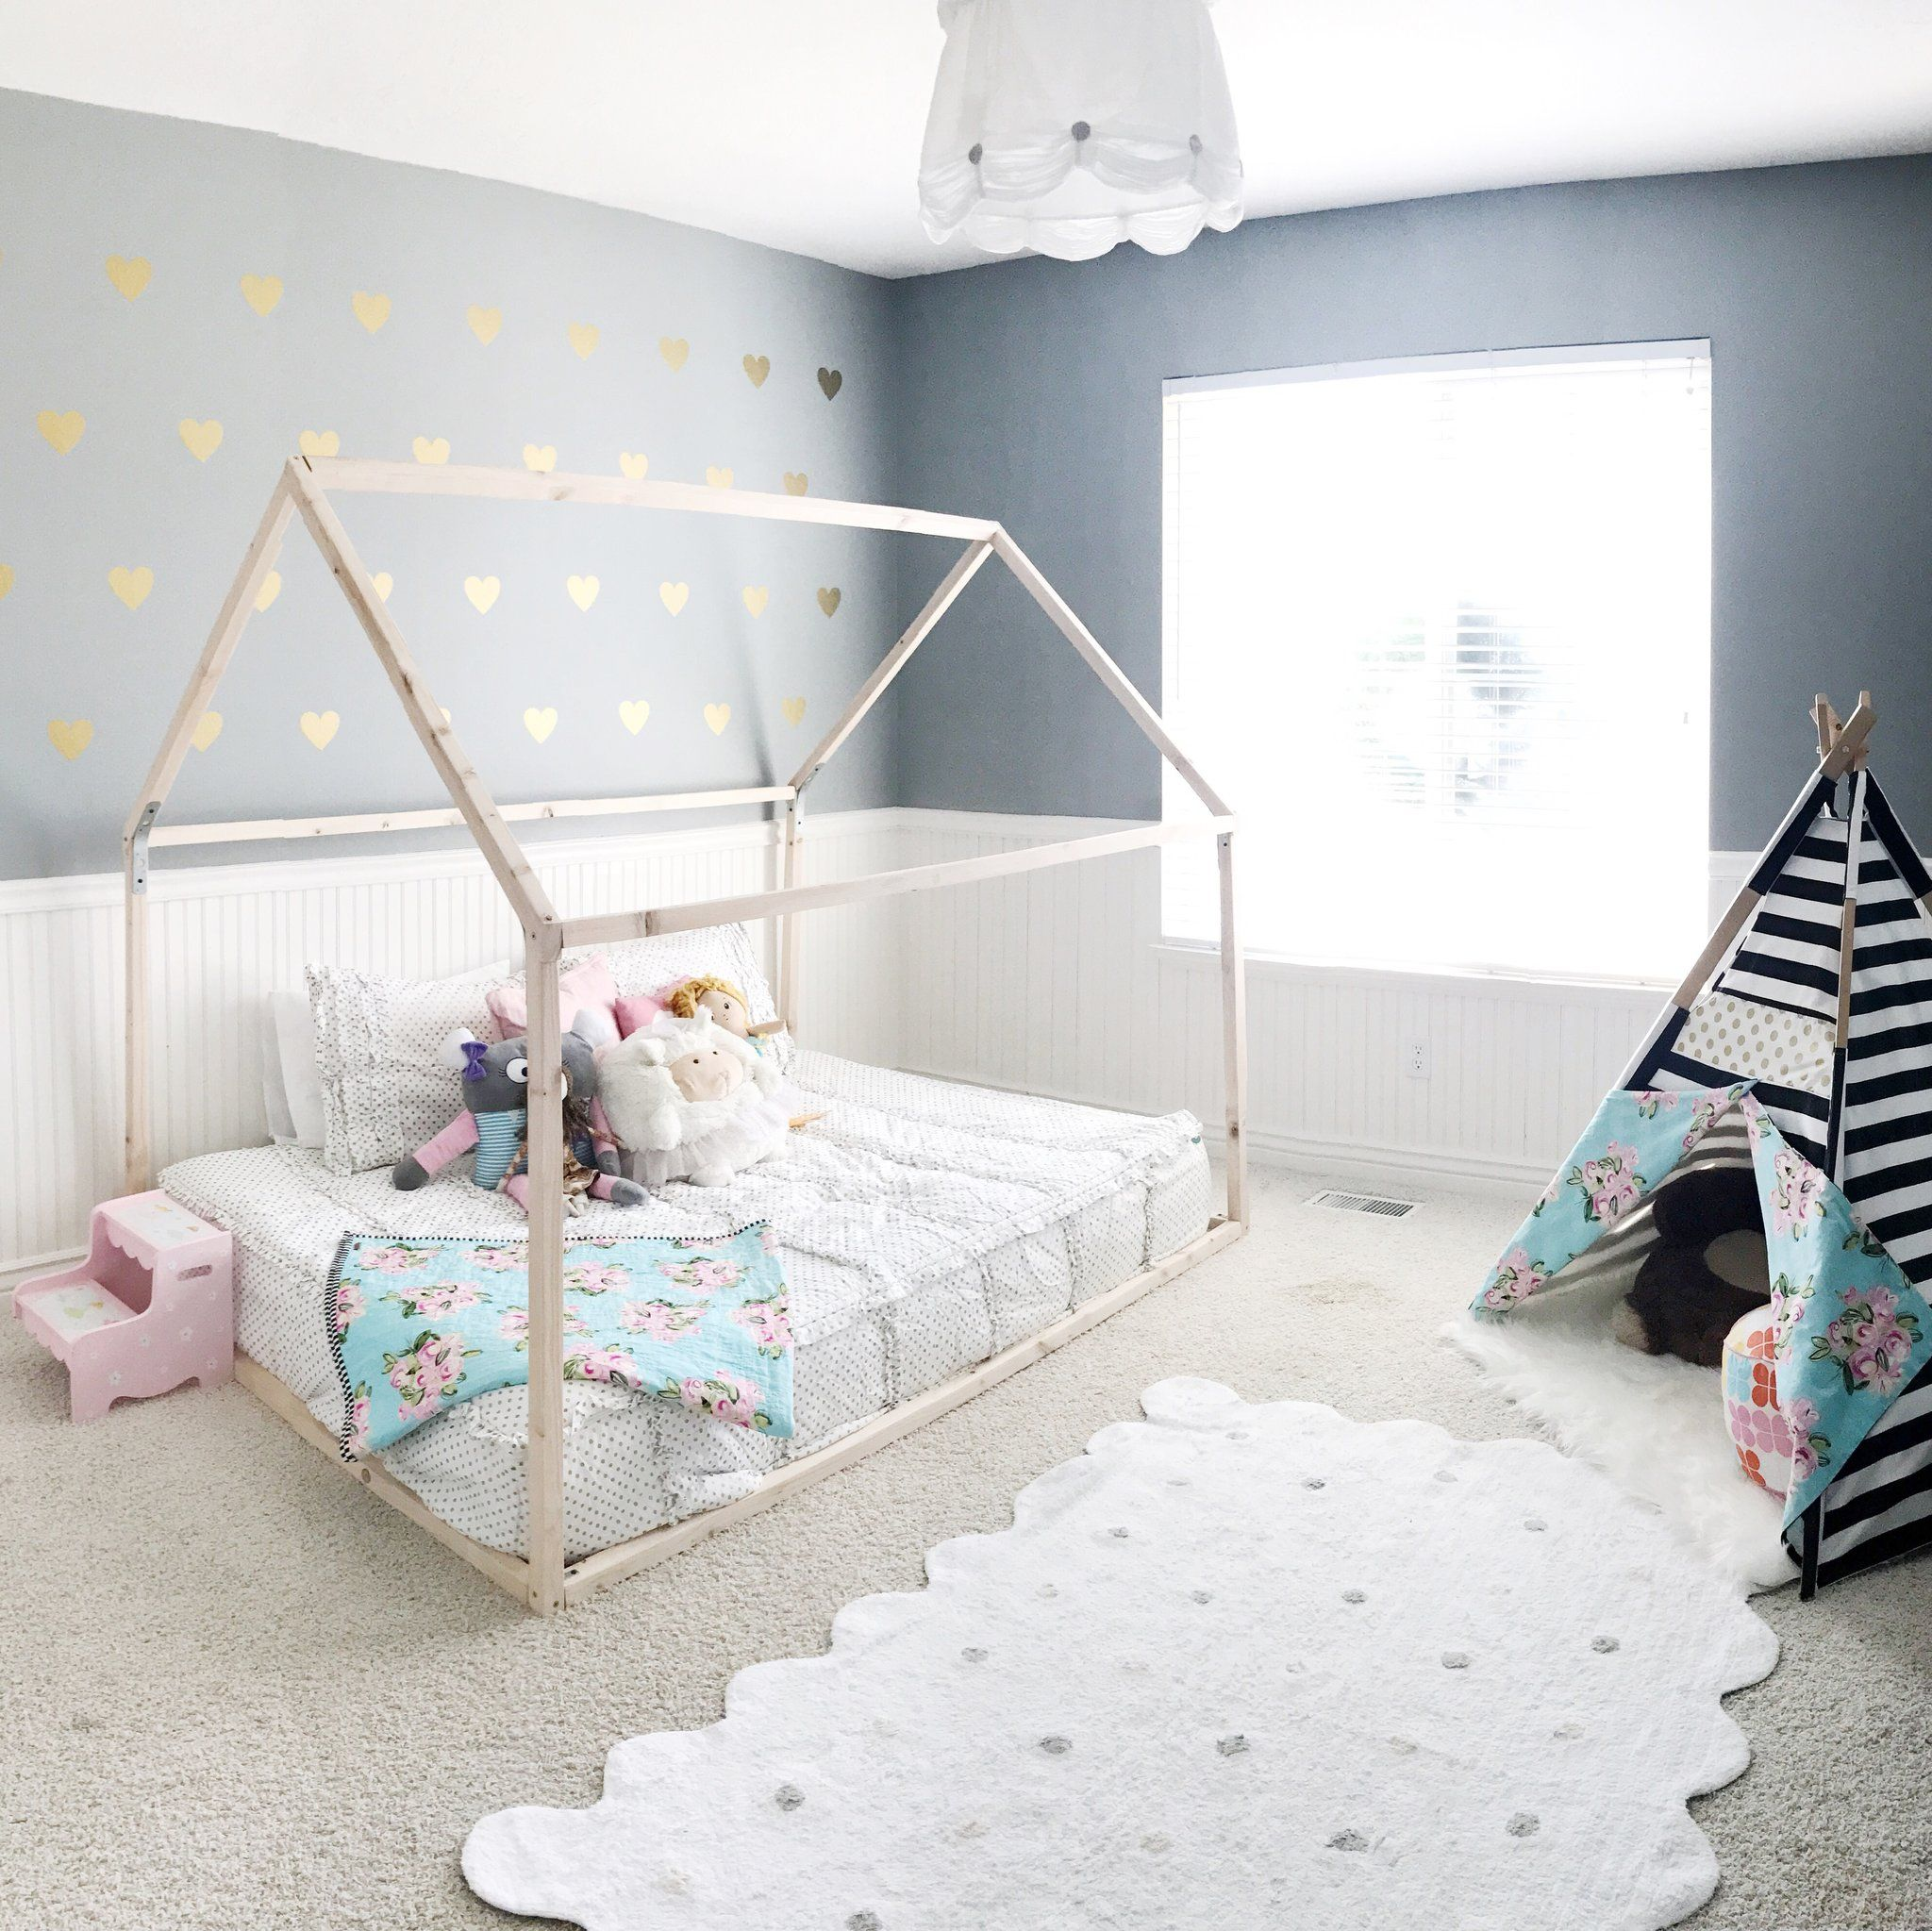 Top Selling House Bed For Kids Kids Room Ideas Kids Room Design